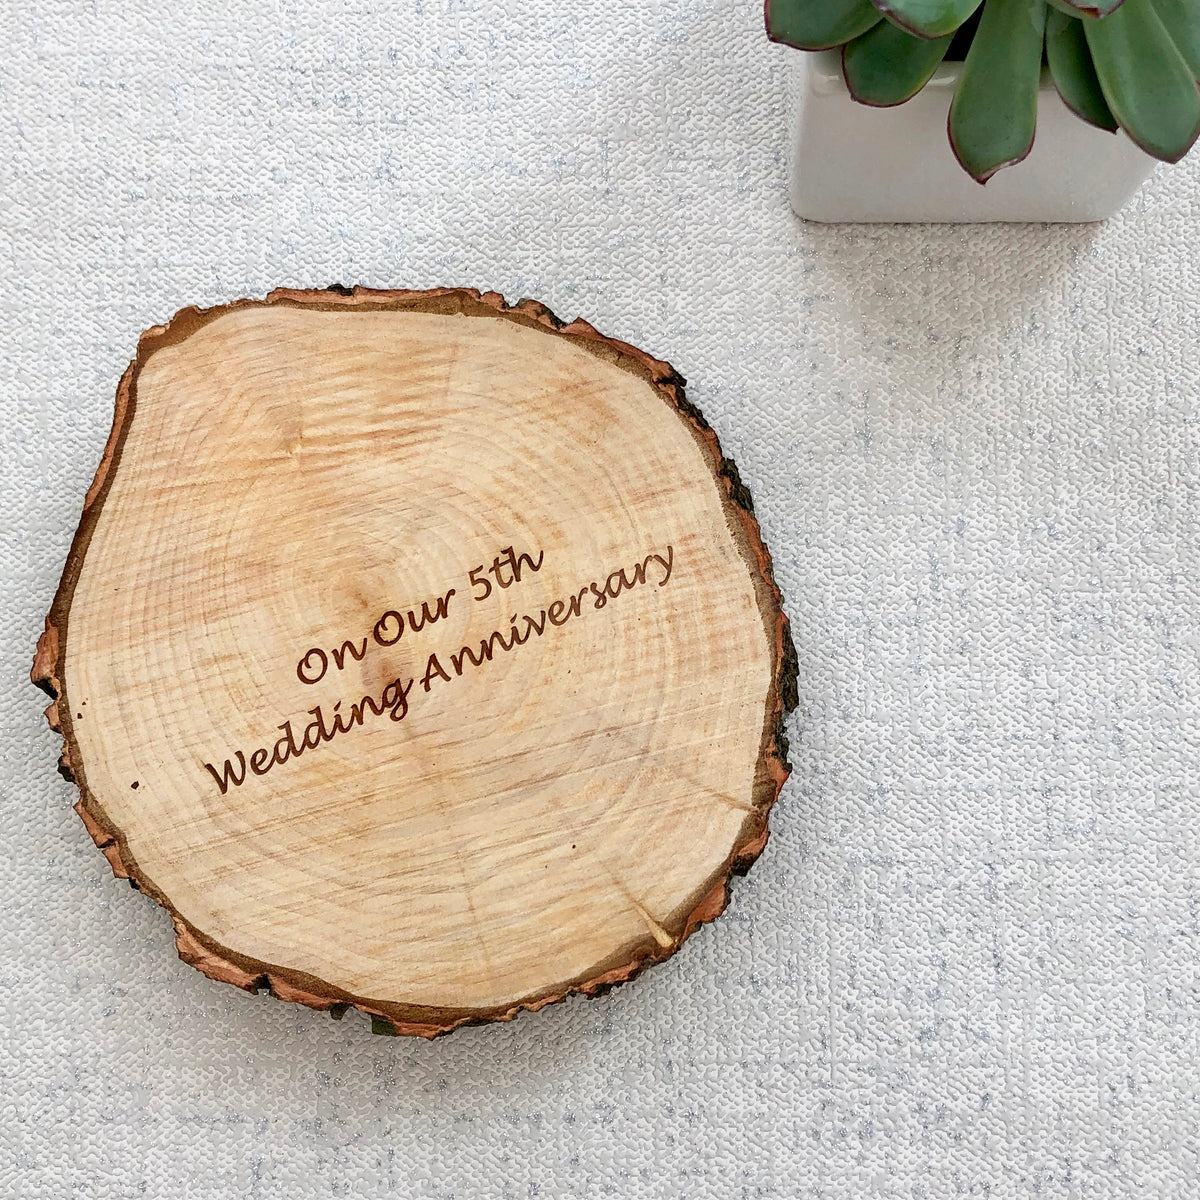 "A wood slice with the words ""on our 5th wedding anniversary"" engraved on it."